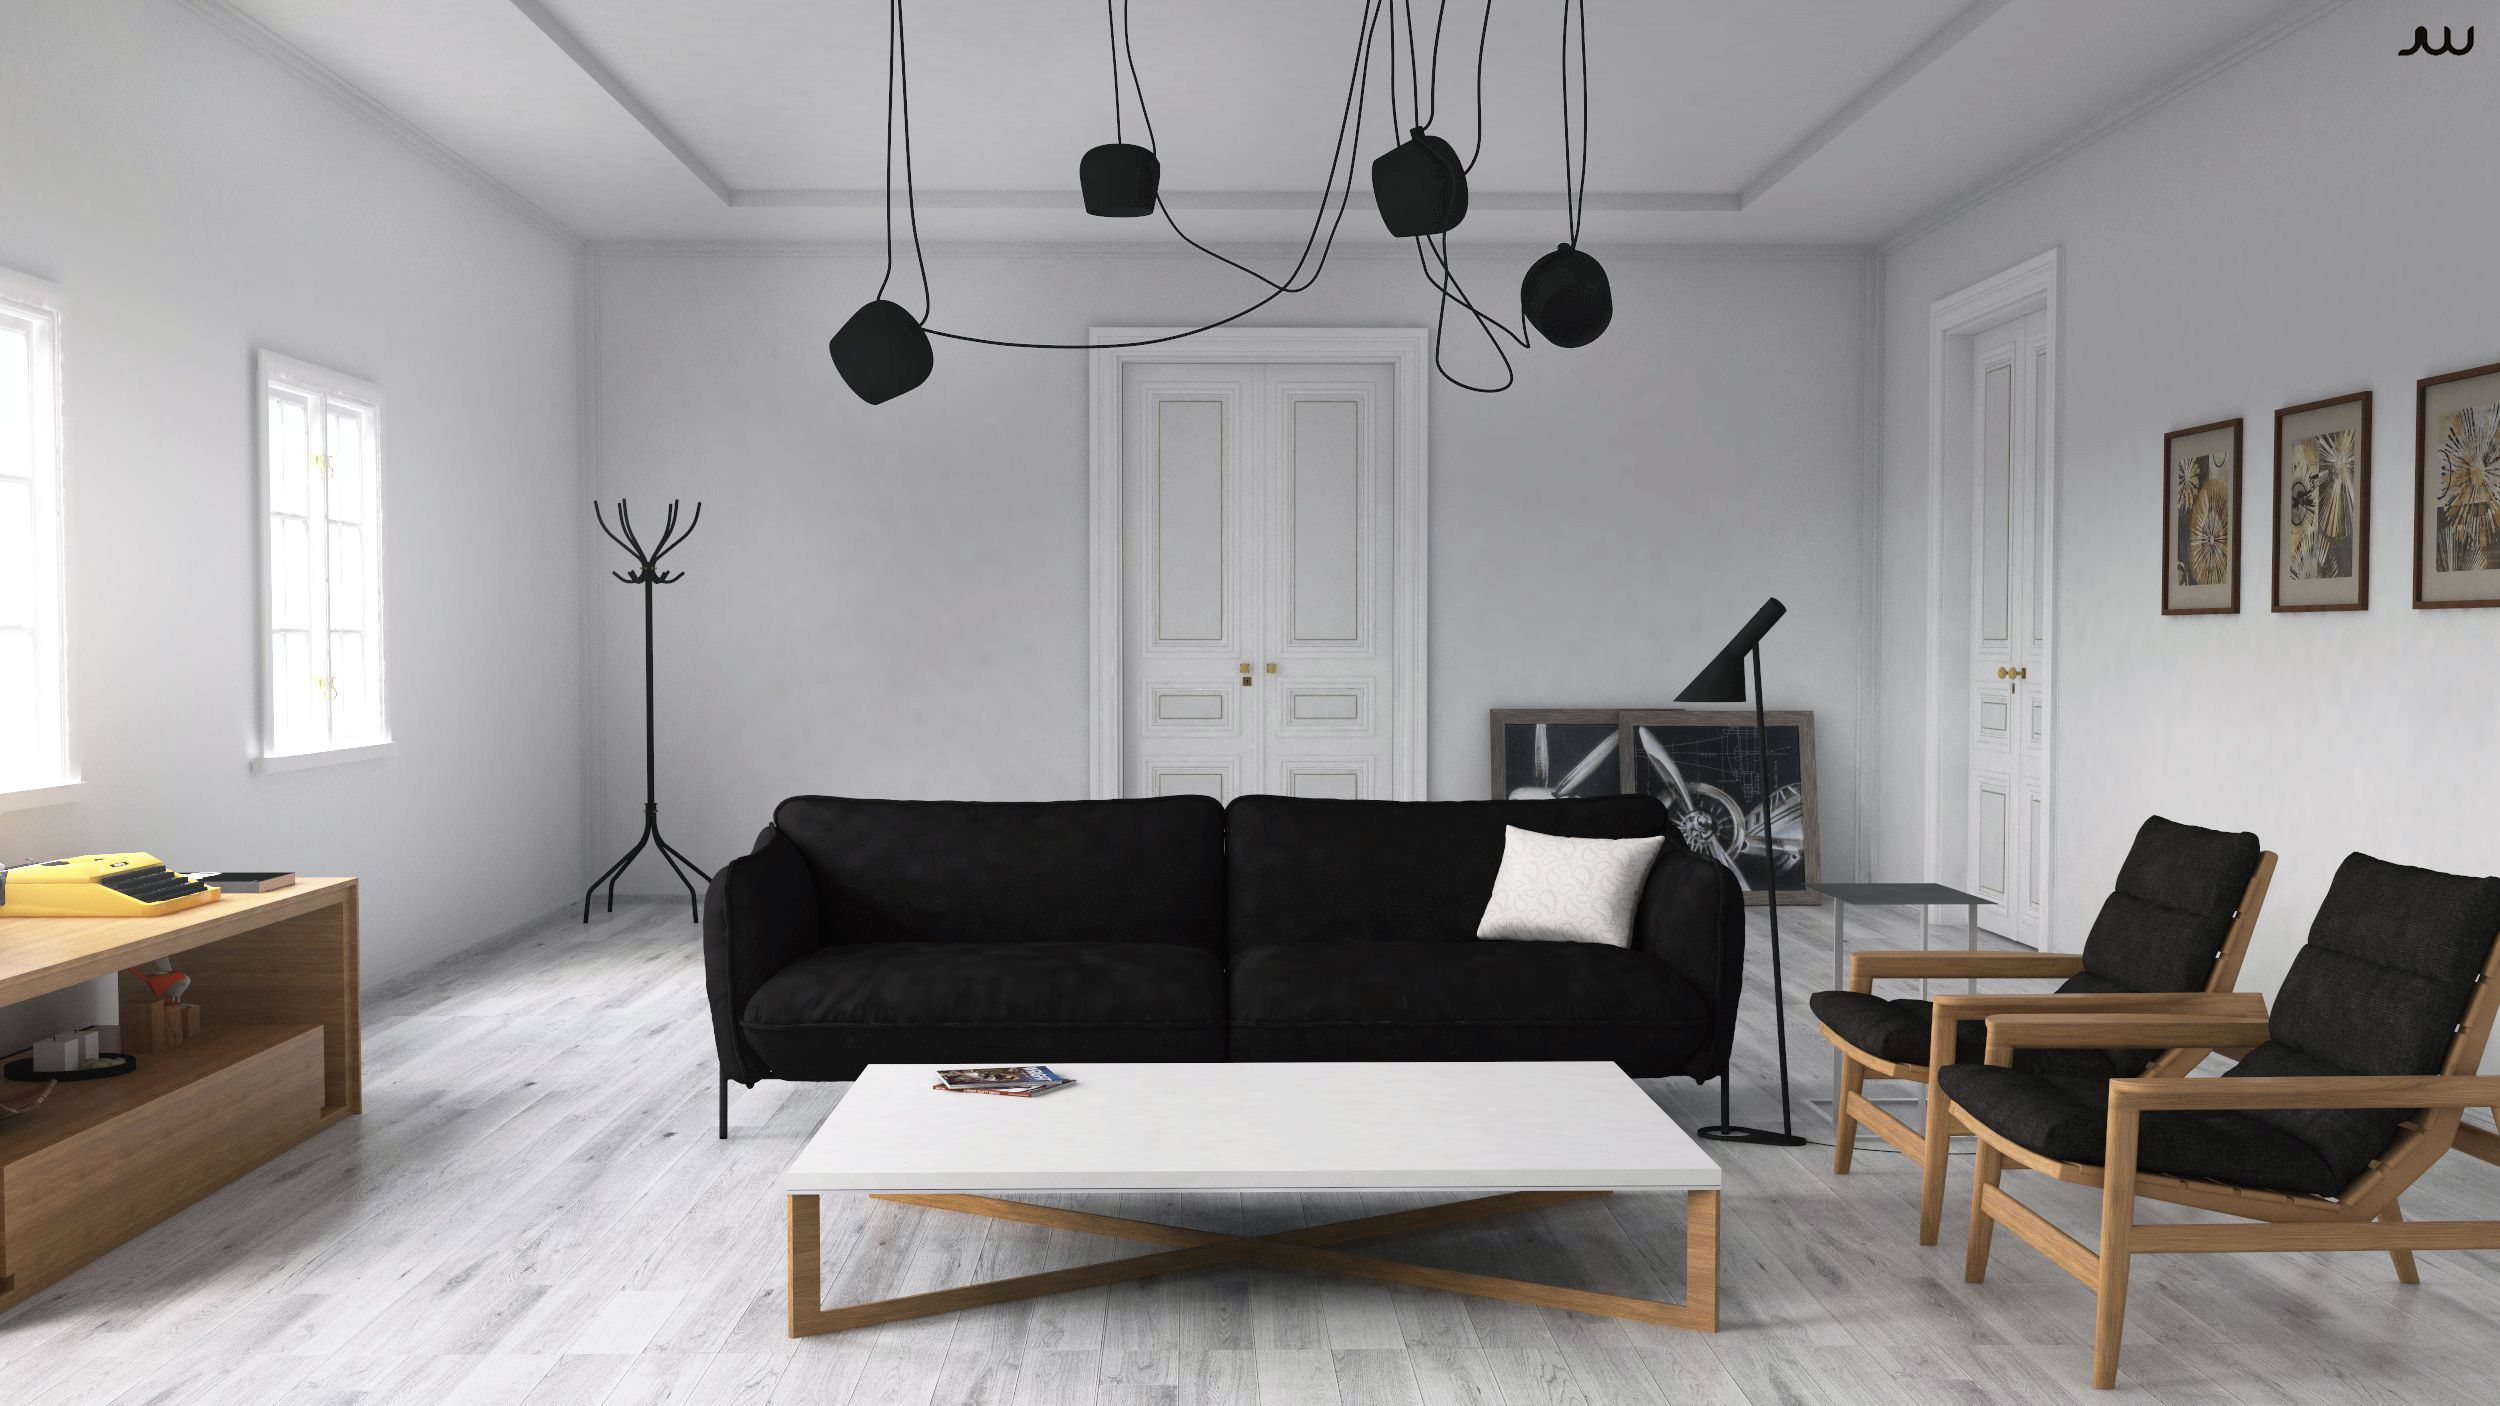 Making Of Scandinavian Interior With Sketchup, Vray And Photoshop